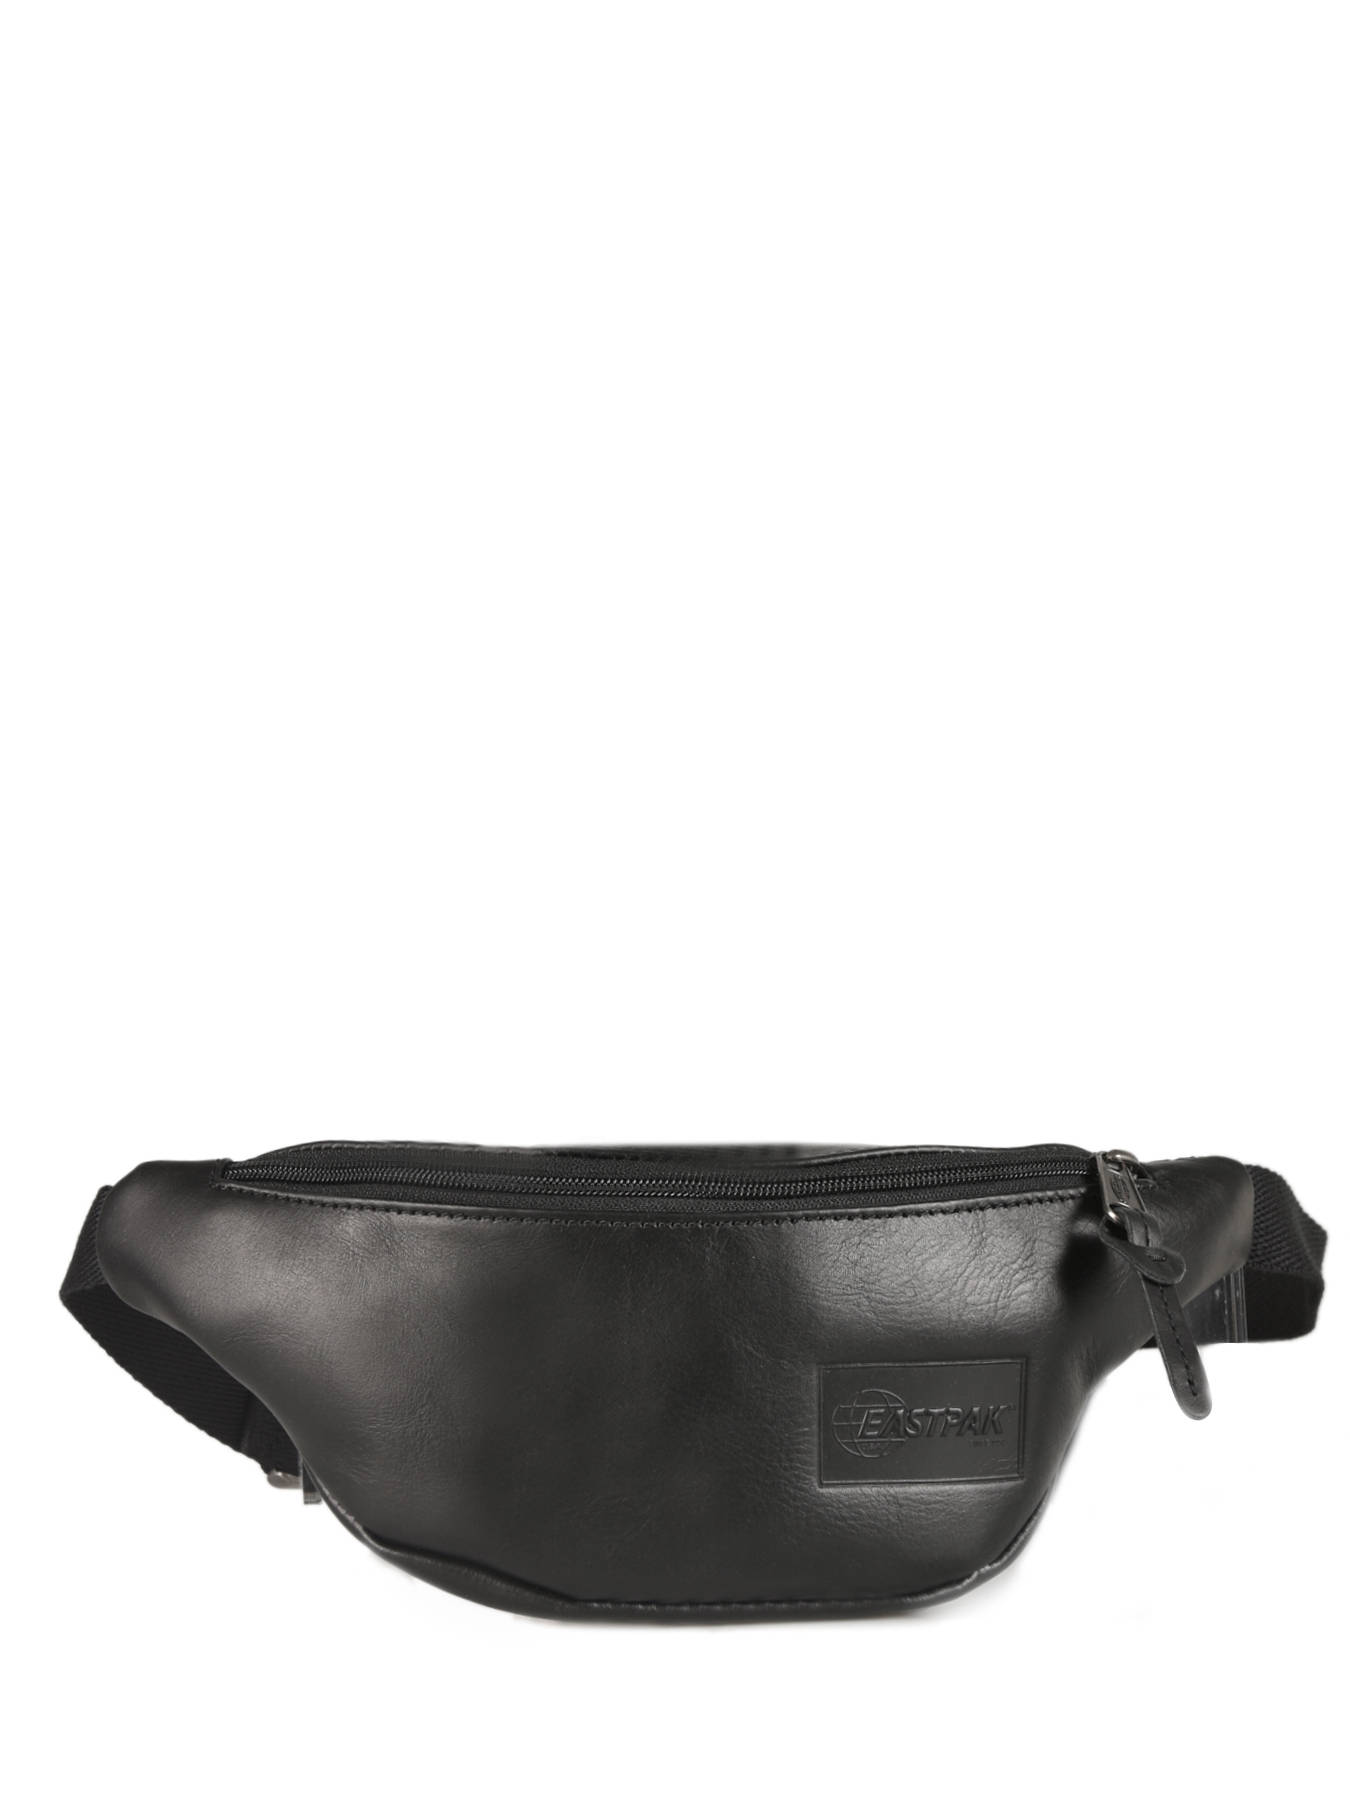 9762c6a3ae Sac banane Eastpak SPRINGER.LEATH black ink leat en vente au ...